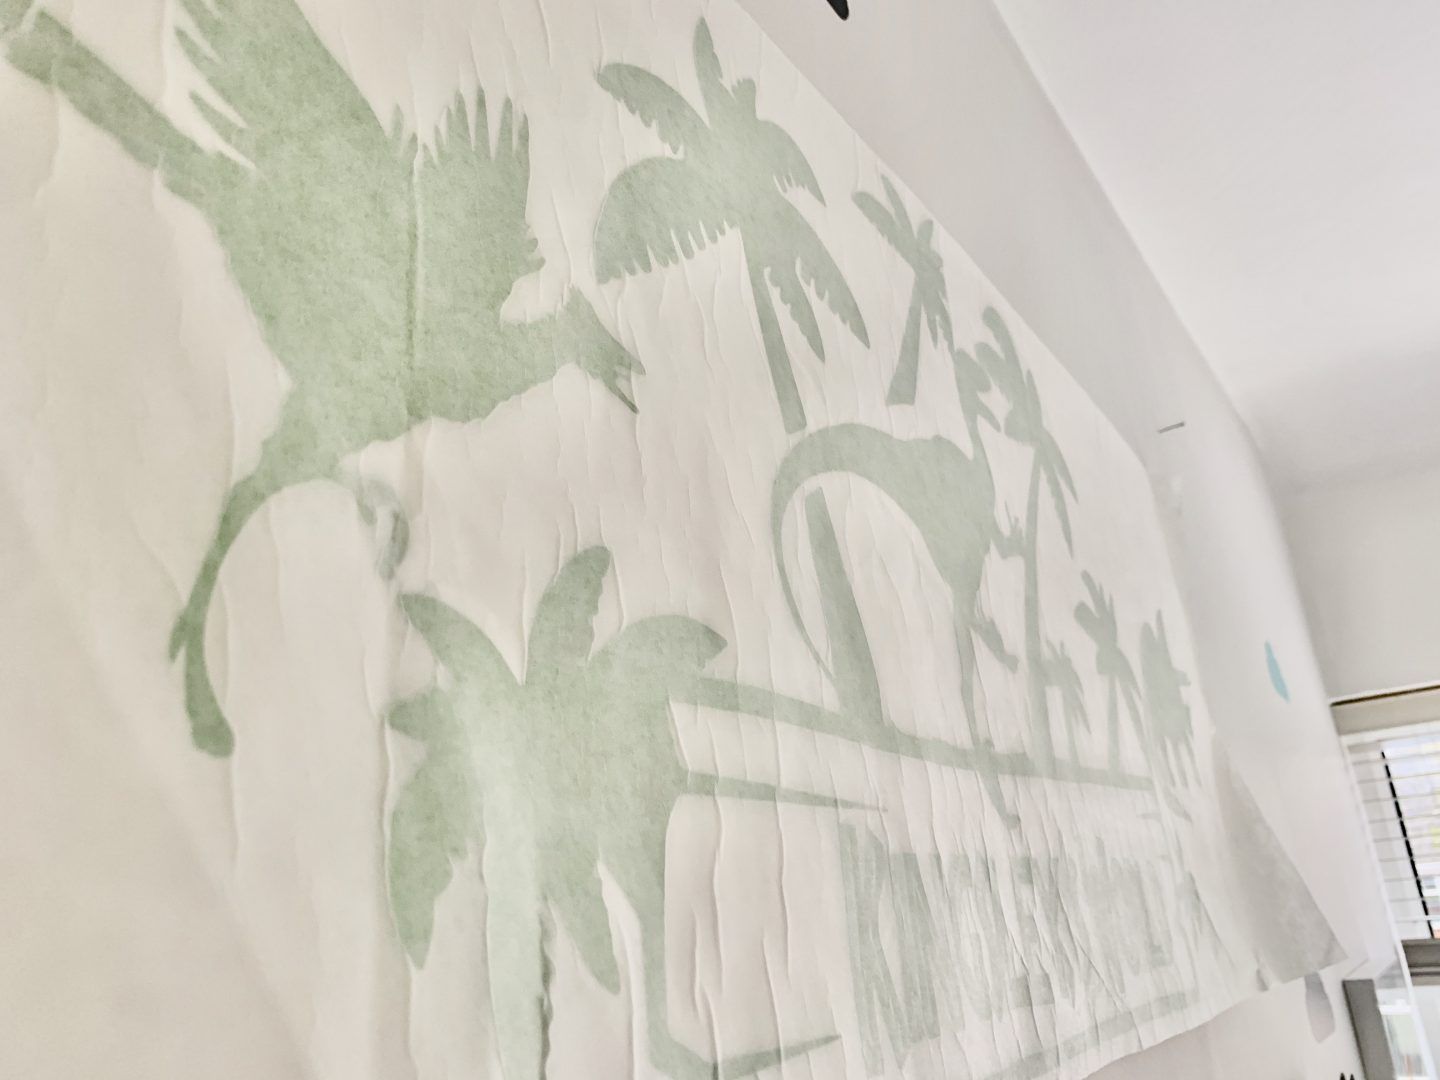 Transferring dinosaur themed wall sticker into wall from JR Decal